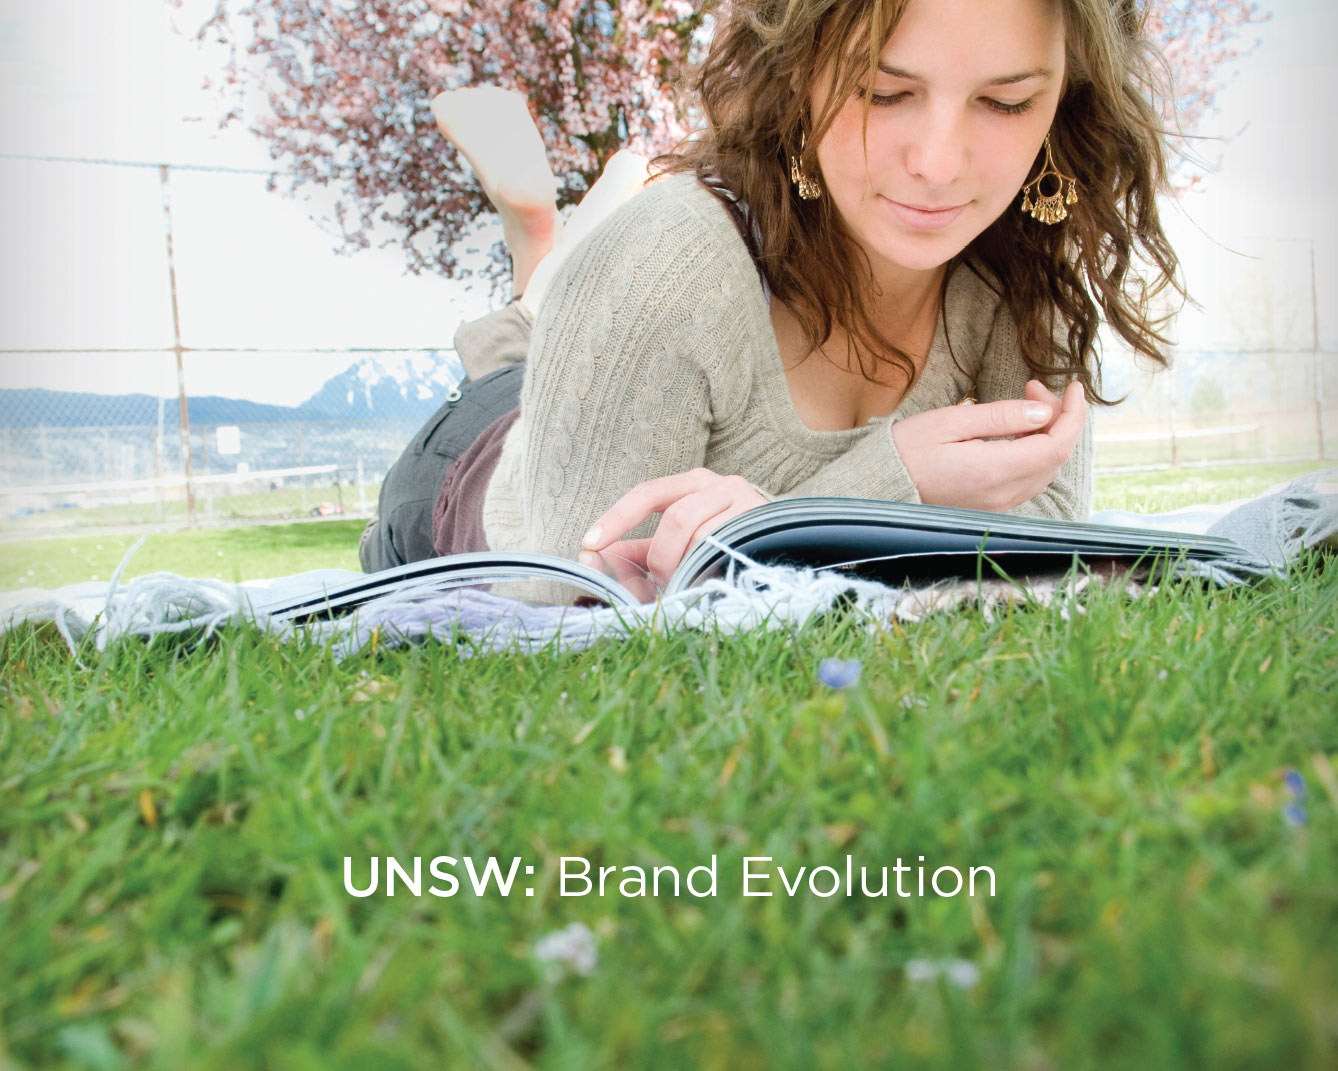 UNSW re-brand poster, woman reading a book